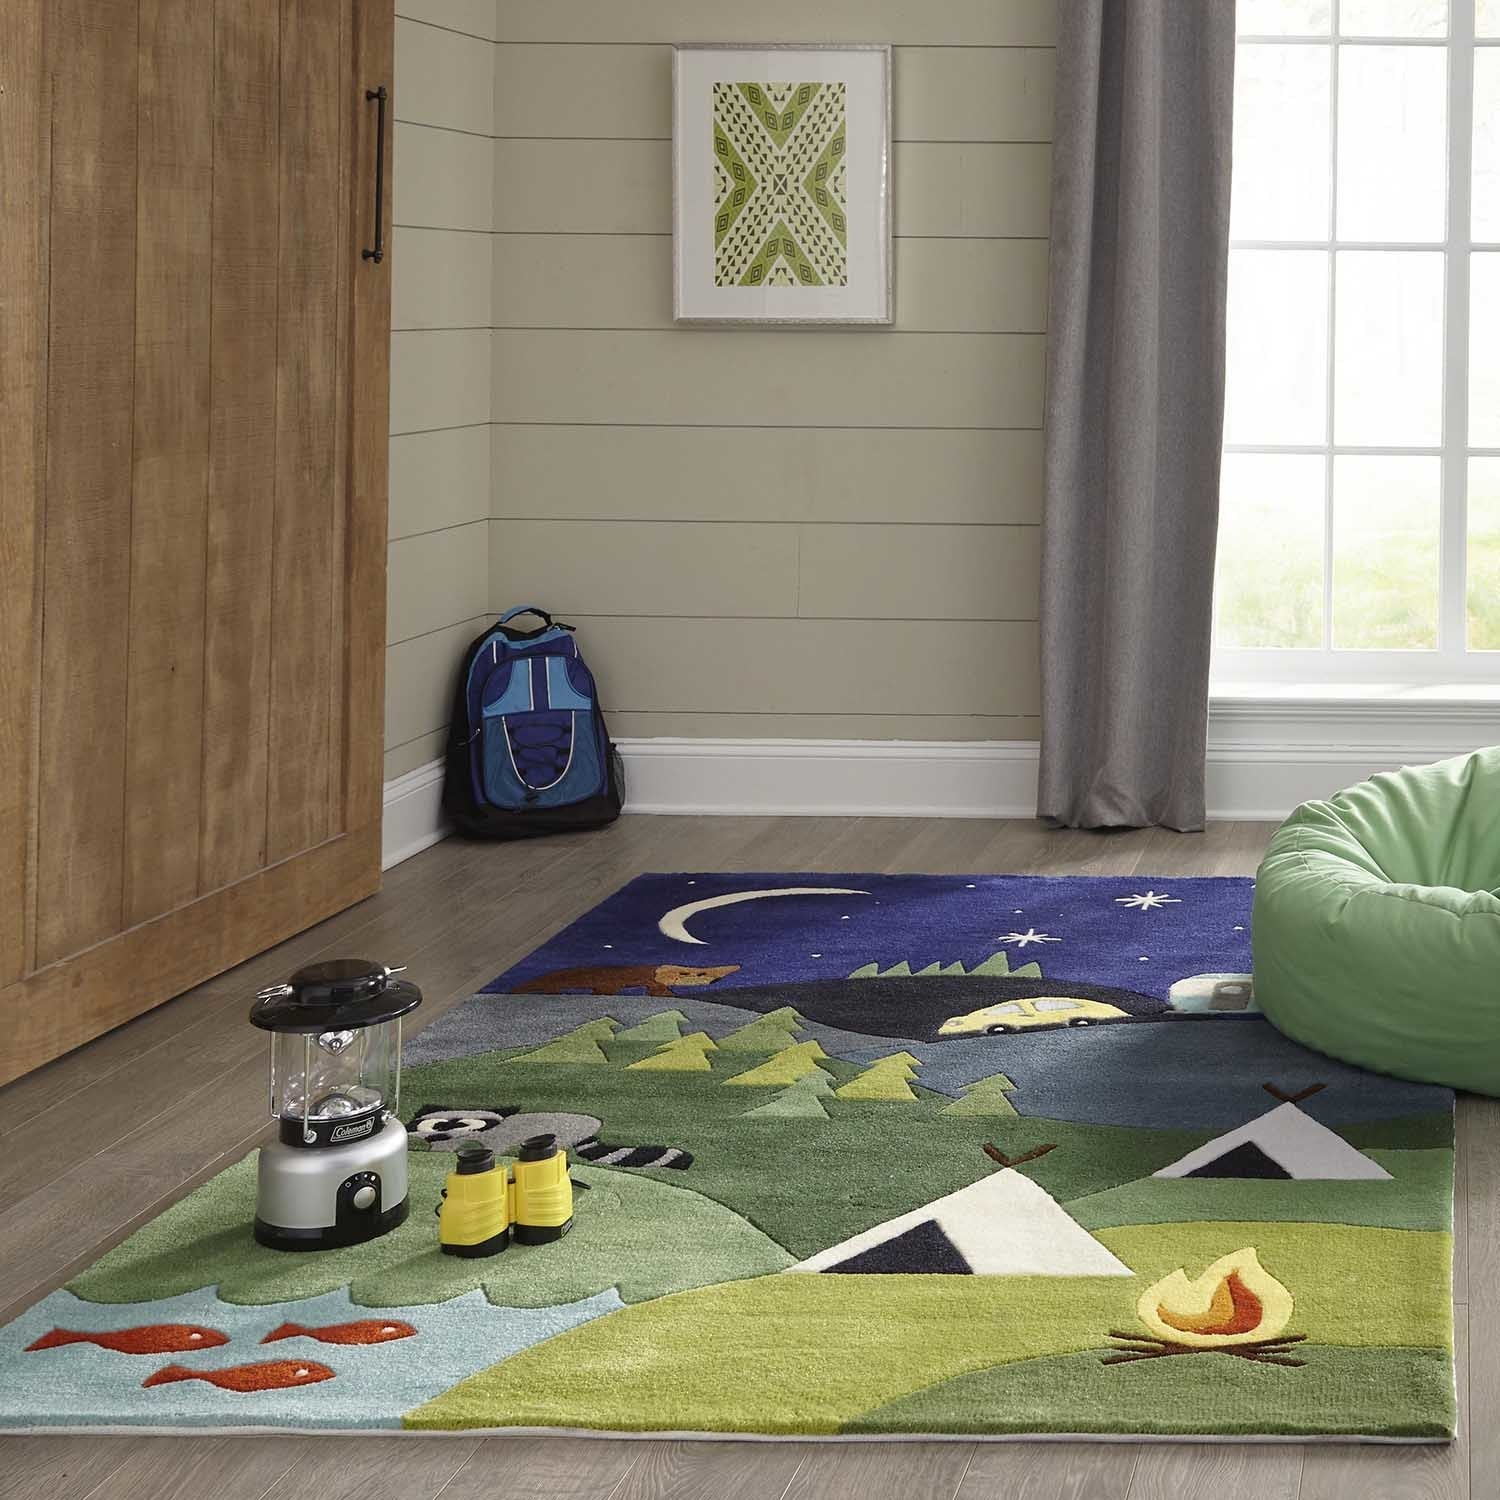 Momeni lil mo whimsy blue camping fun hand tufted and hand carved momeni lil mo whimsy blue camping fun hand tufted and hand carved rug 5 x 7 free shipping today overstock 18689707 dailygadgetfo Choice Image